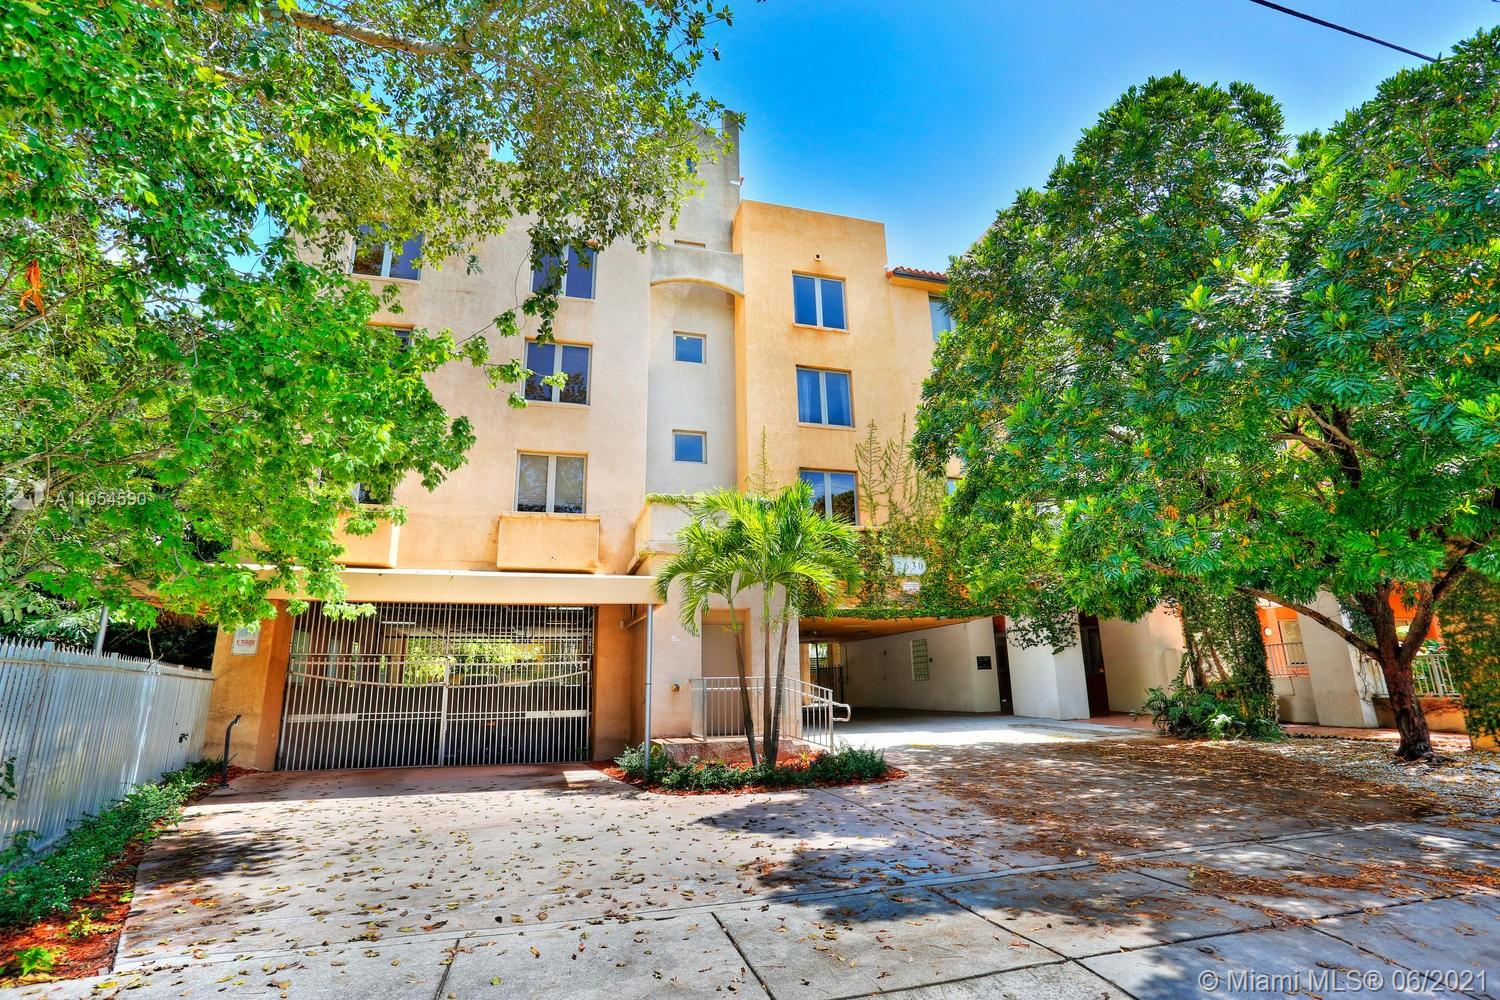 With over 800 square feet of light and bright interiors, this corner unit is impeccably maintained.  Boasting impact windows, washer/dryer, tile throughout, updated and open kitchen layout with stainless steel appliances,  unit with walls of windows overlooks serene gardens.   Dixie Grove is located near the Center Grove with its chic boutiques and wonderful restaurants.  Includes one assigned,  covered parking space. No pets allowed.